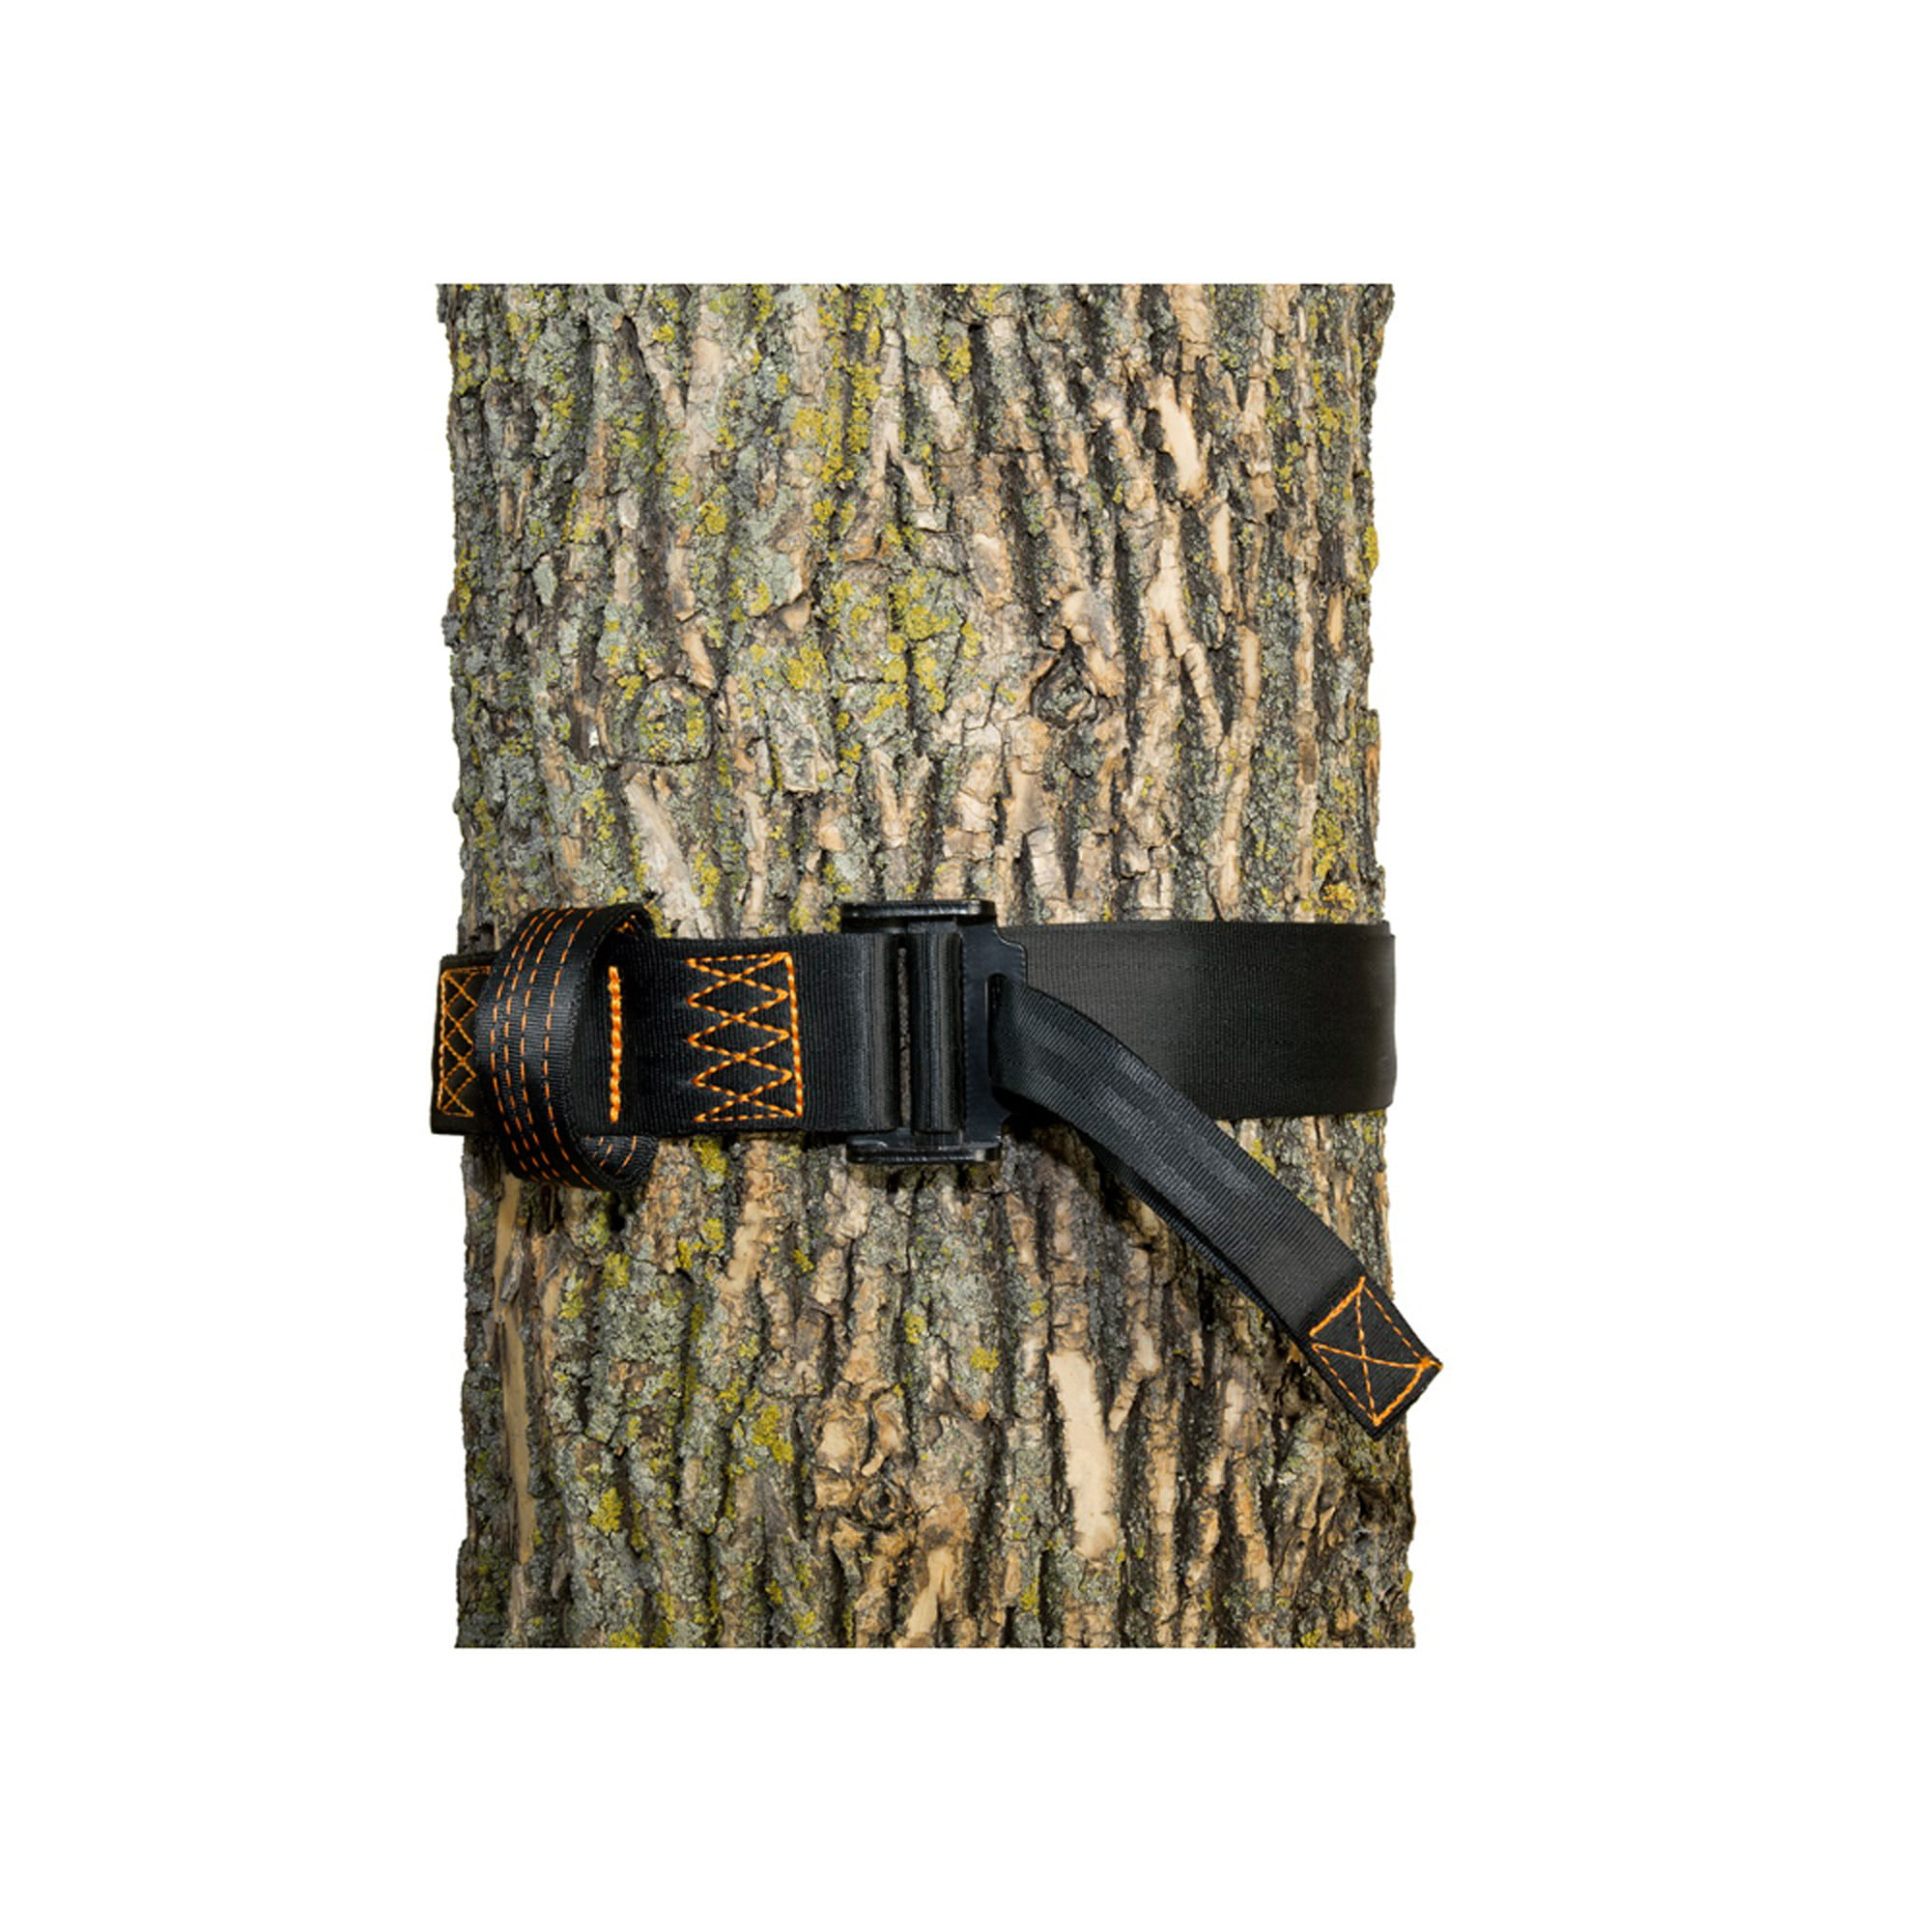 Muddy Safety Harness Tree Strap Walmart Com